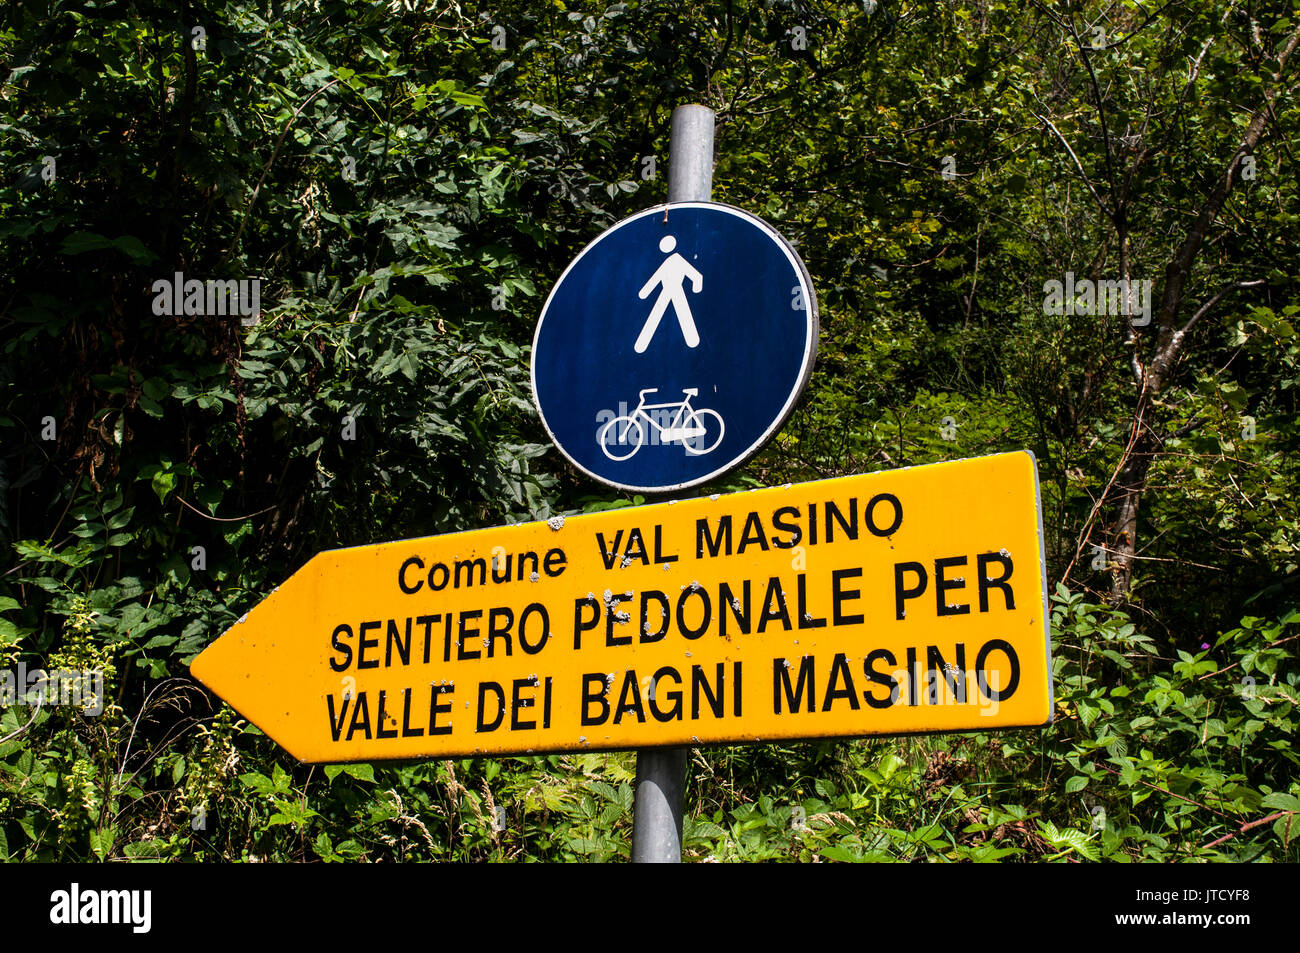 Bagni Di Masino Stock Photos & Bagni Di Masino Stock Images - Alamy